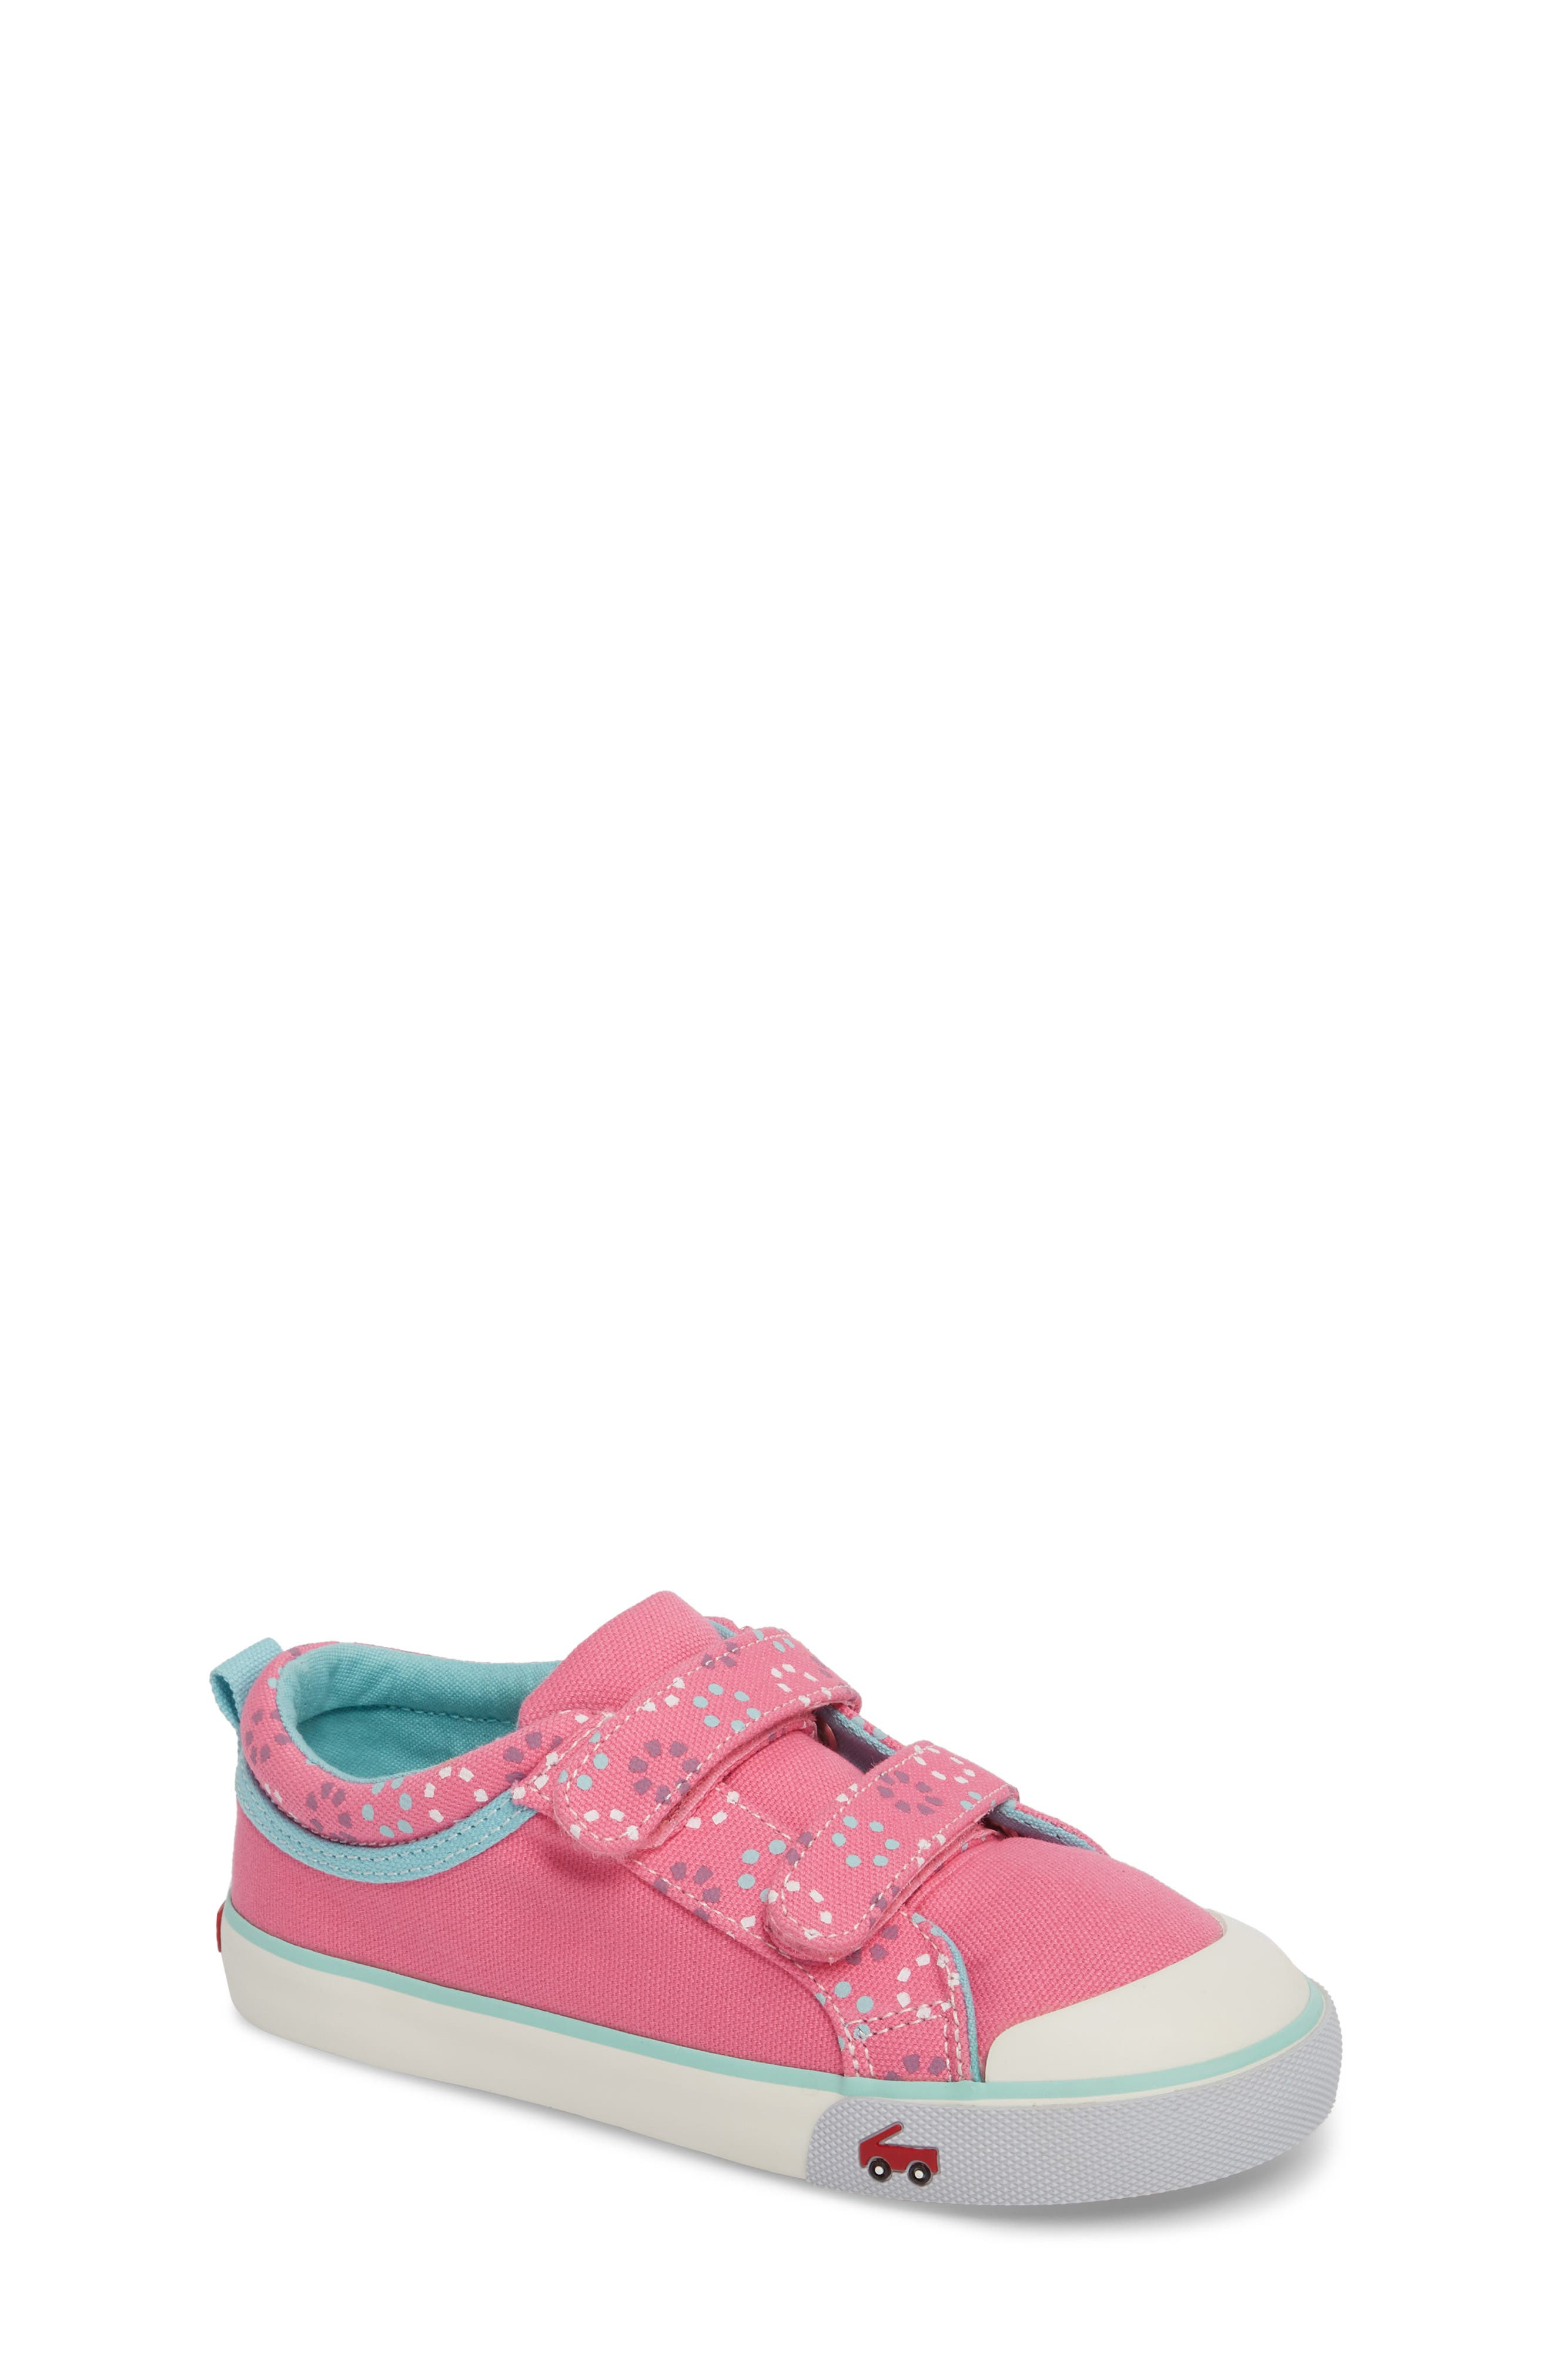 'Robyne' Sneaker,                         Main,                         color, Hot Pink Circle Mix